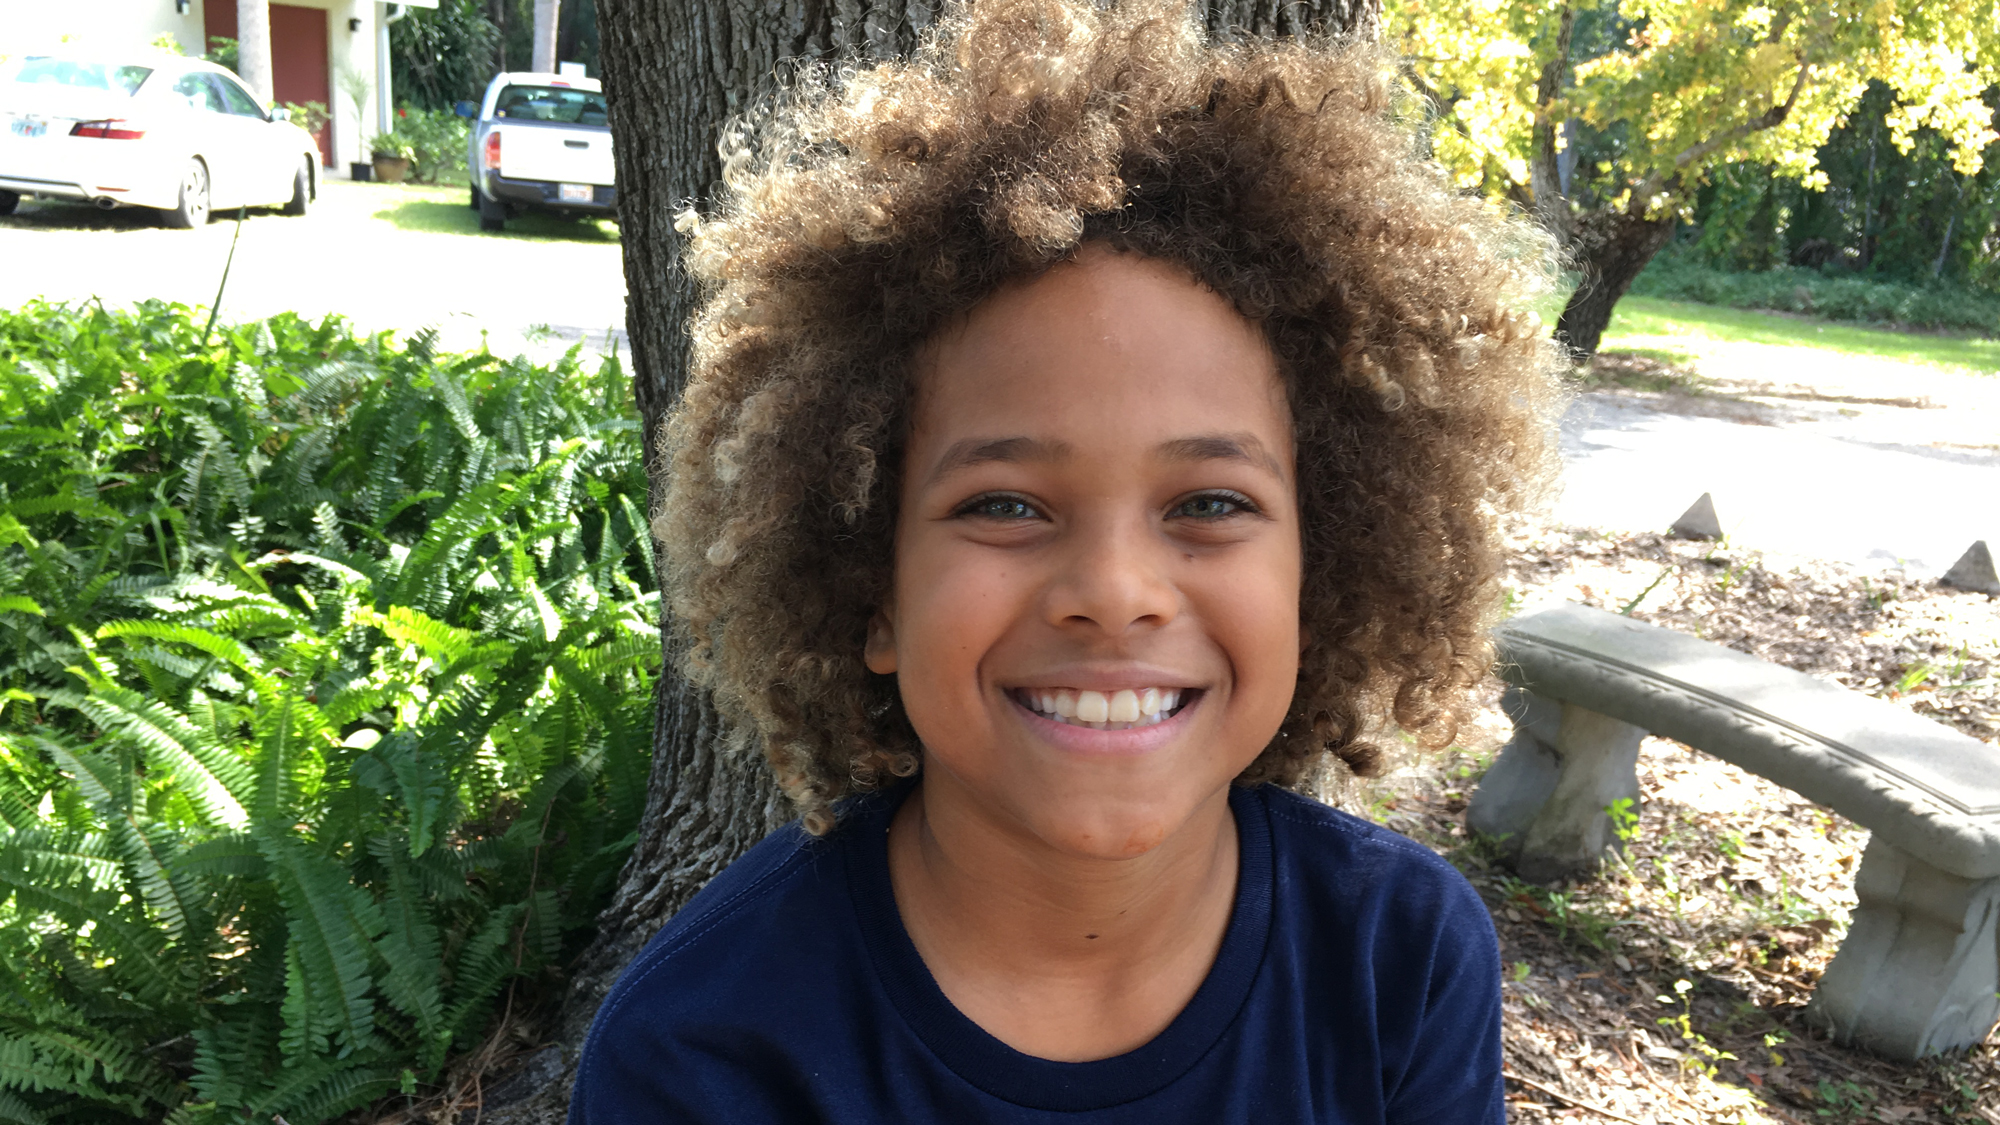 A portrait of 10-year-old Levi Draheim with brown-blonde curly hair.